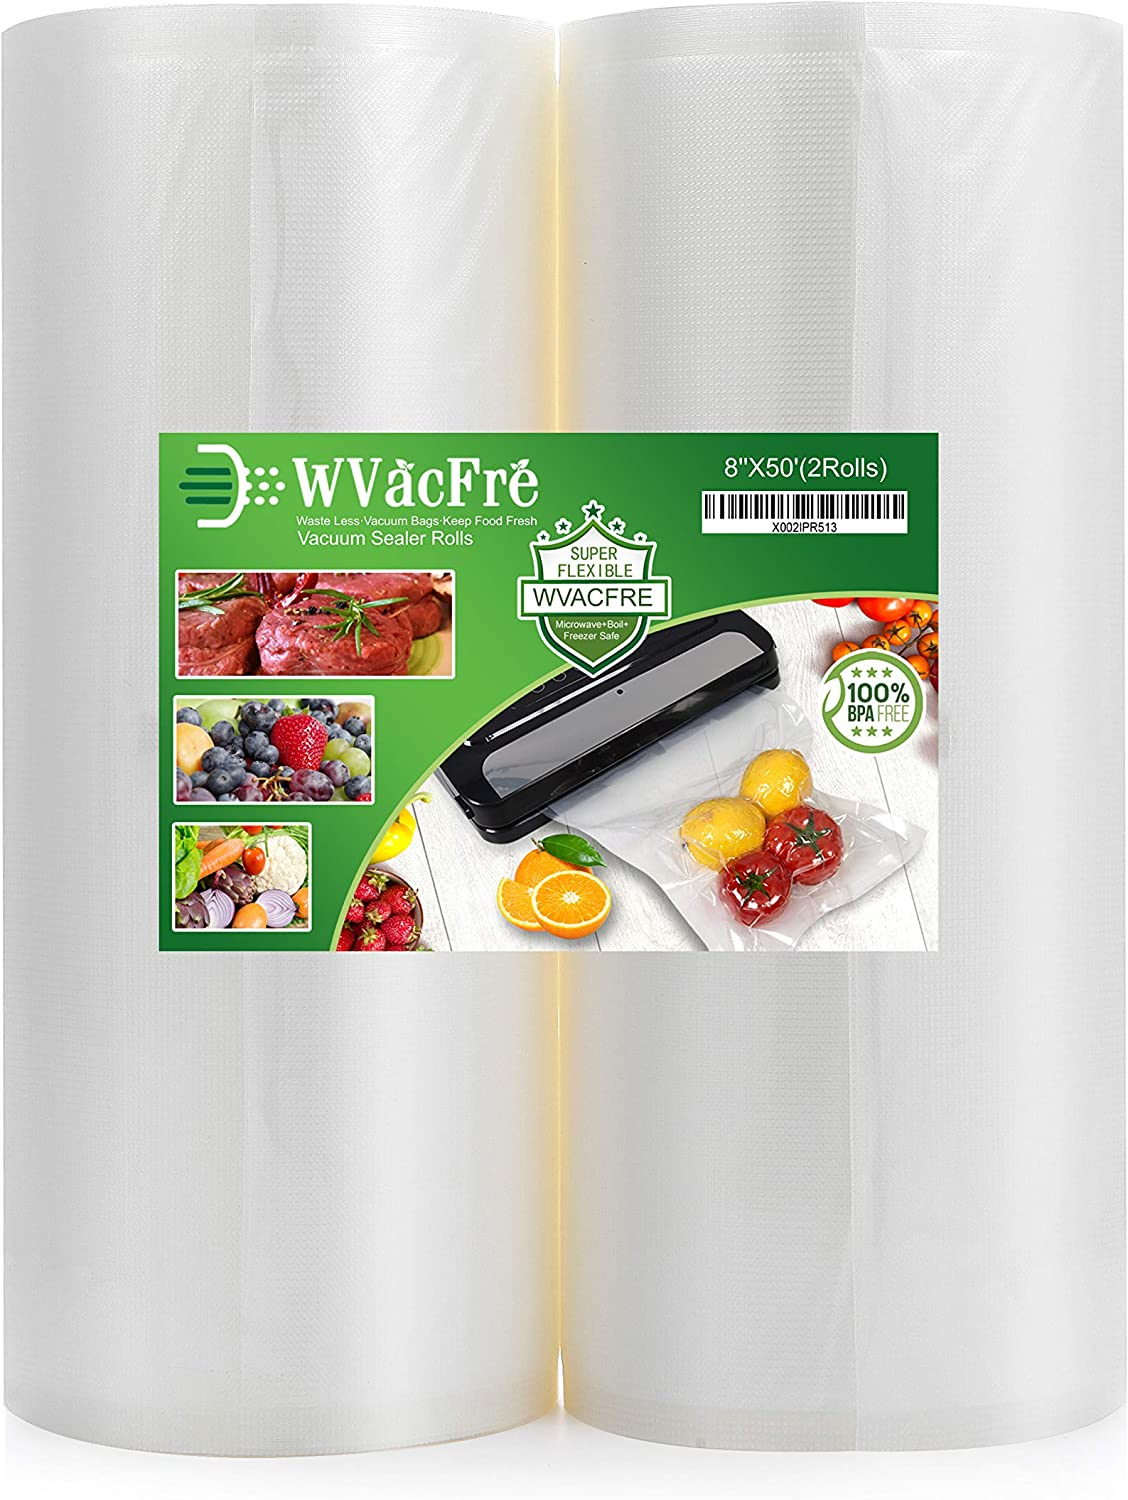 WVacFre 2Pack 8X50 Food Saver Vacuum Sealer Bags Rolls with BPA Free,Heavy Duty,Great for Food Vac Storage or Sous Vide Cooking